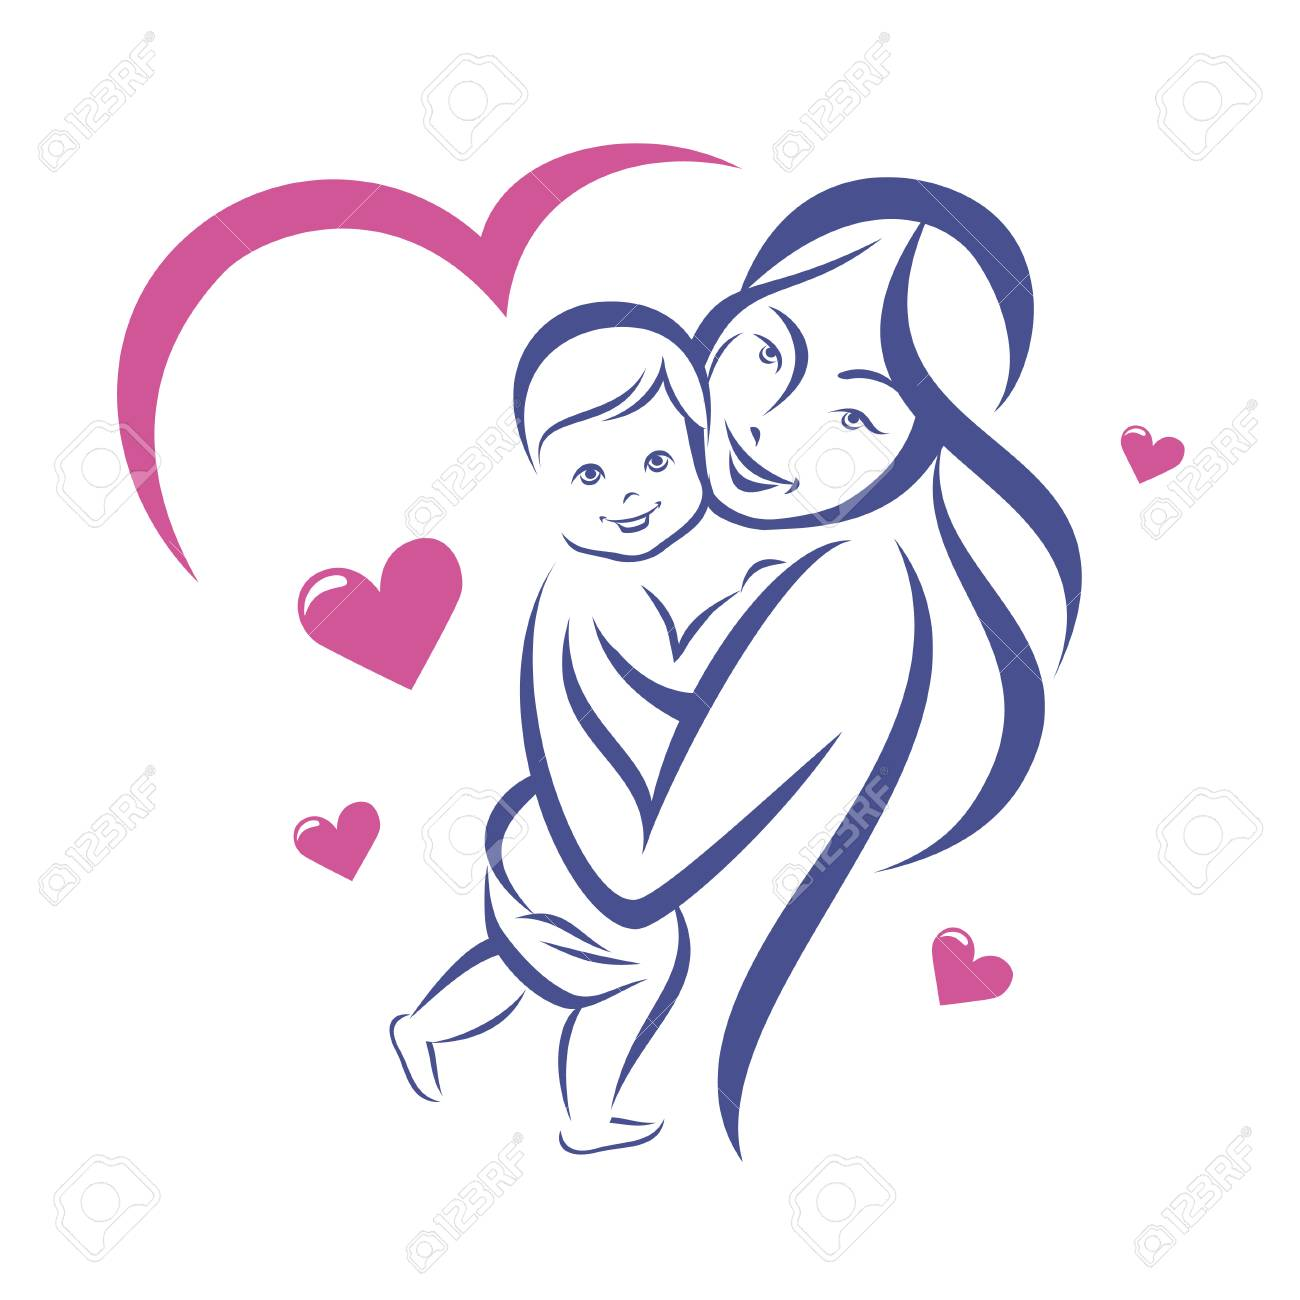 Happy mother and baby smiling family outlined vector sketch stock vector 89821413